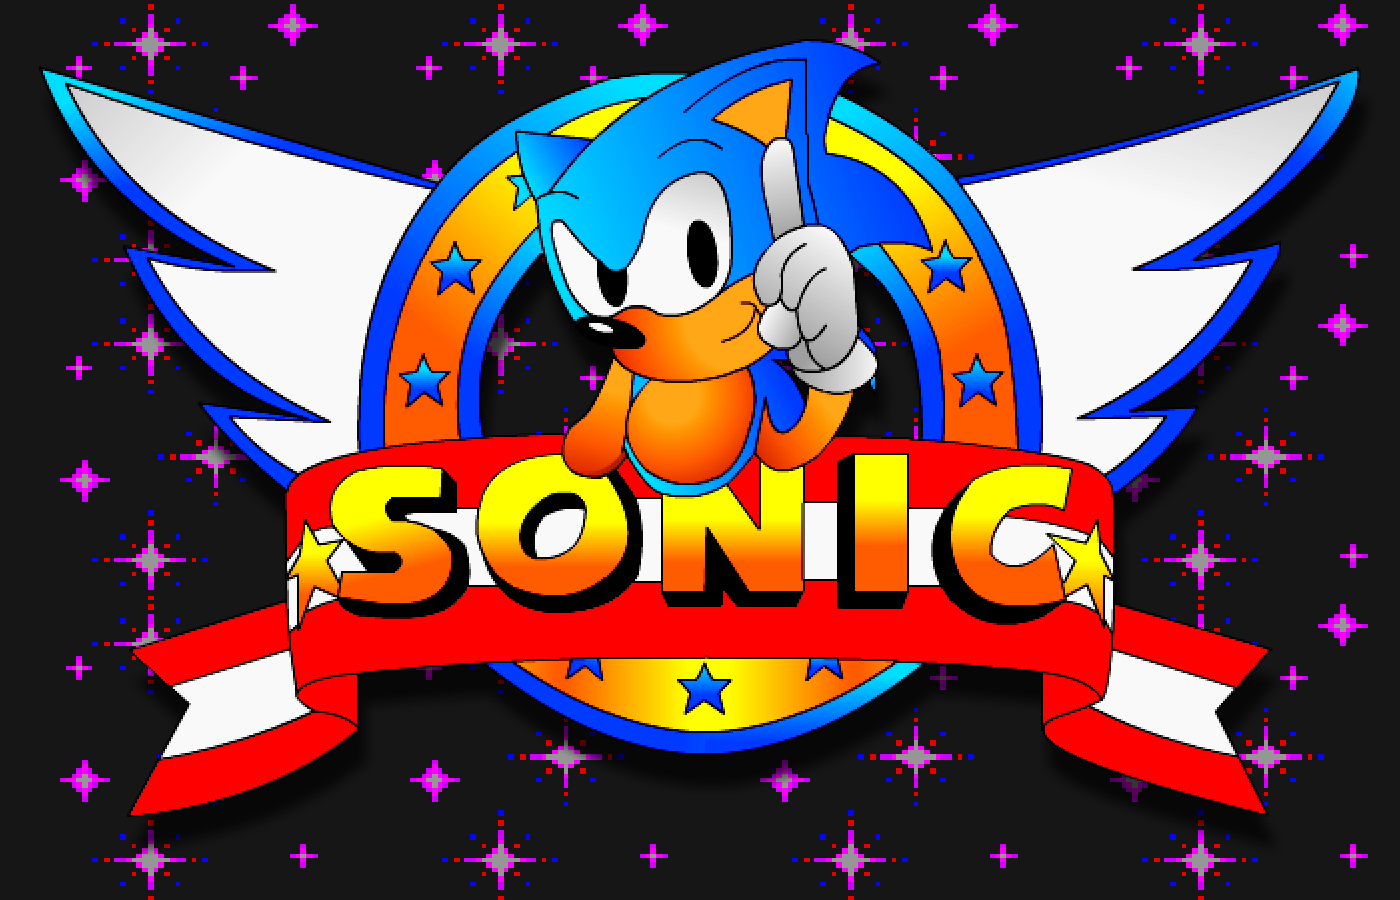 Sonic says no, muthafukkah